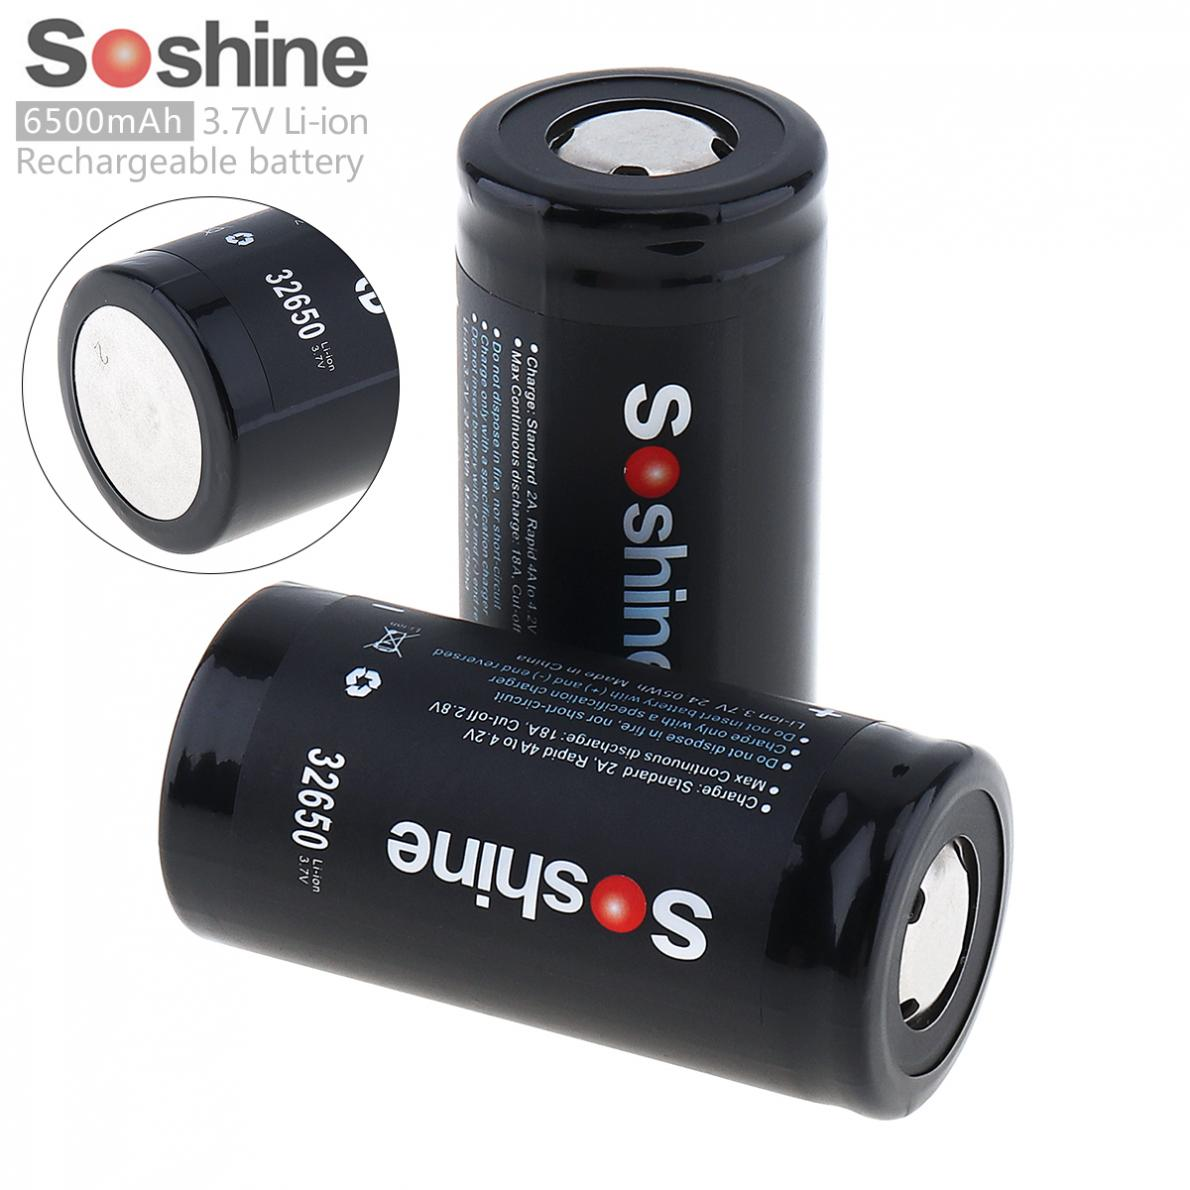 2pcs Soshine High Capacity 6500mAh 3.7V 32650 Li-ion Rechargeable Battery with 18A Discharge Current for LED Flashlight Headlamp2pcs Soshine High Capacity 6500mAh 3.7V 32650 Li-ion Rechargeable Battery with 18A Discharge Current for LED Flashlight Headlamp